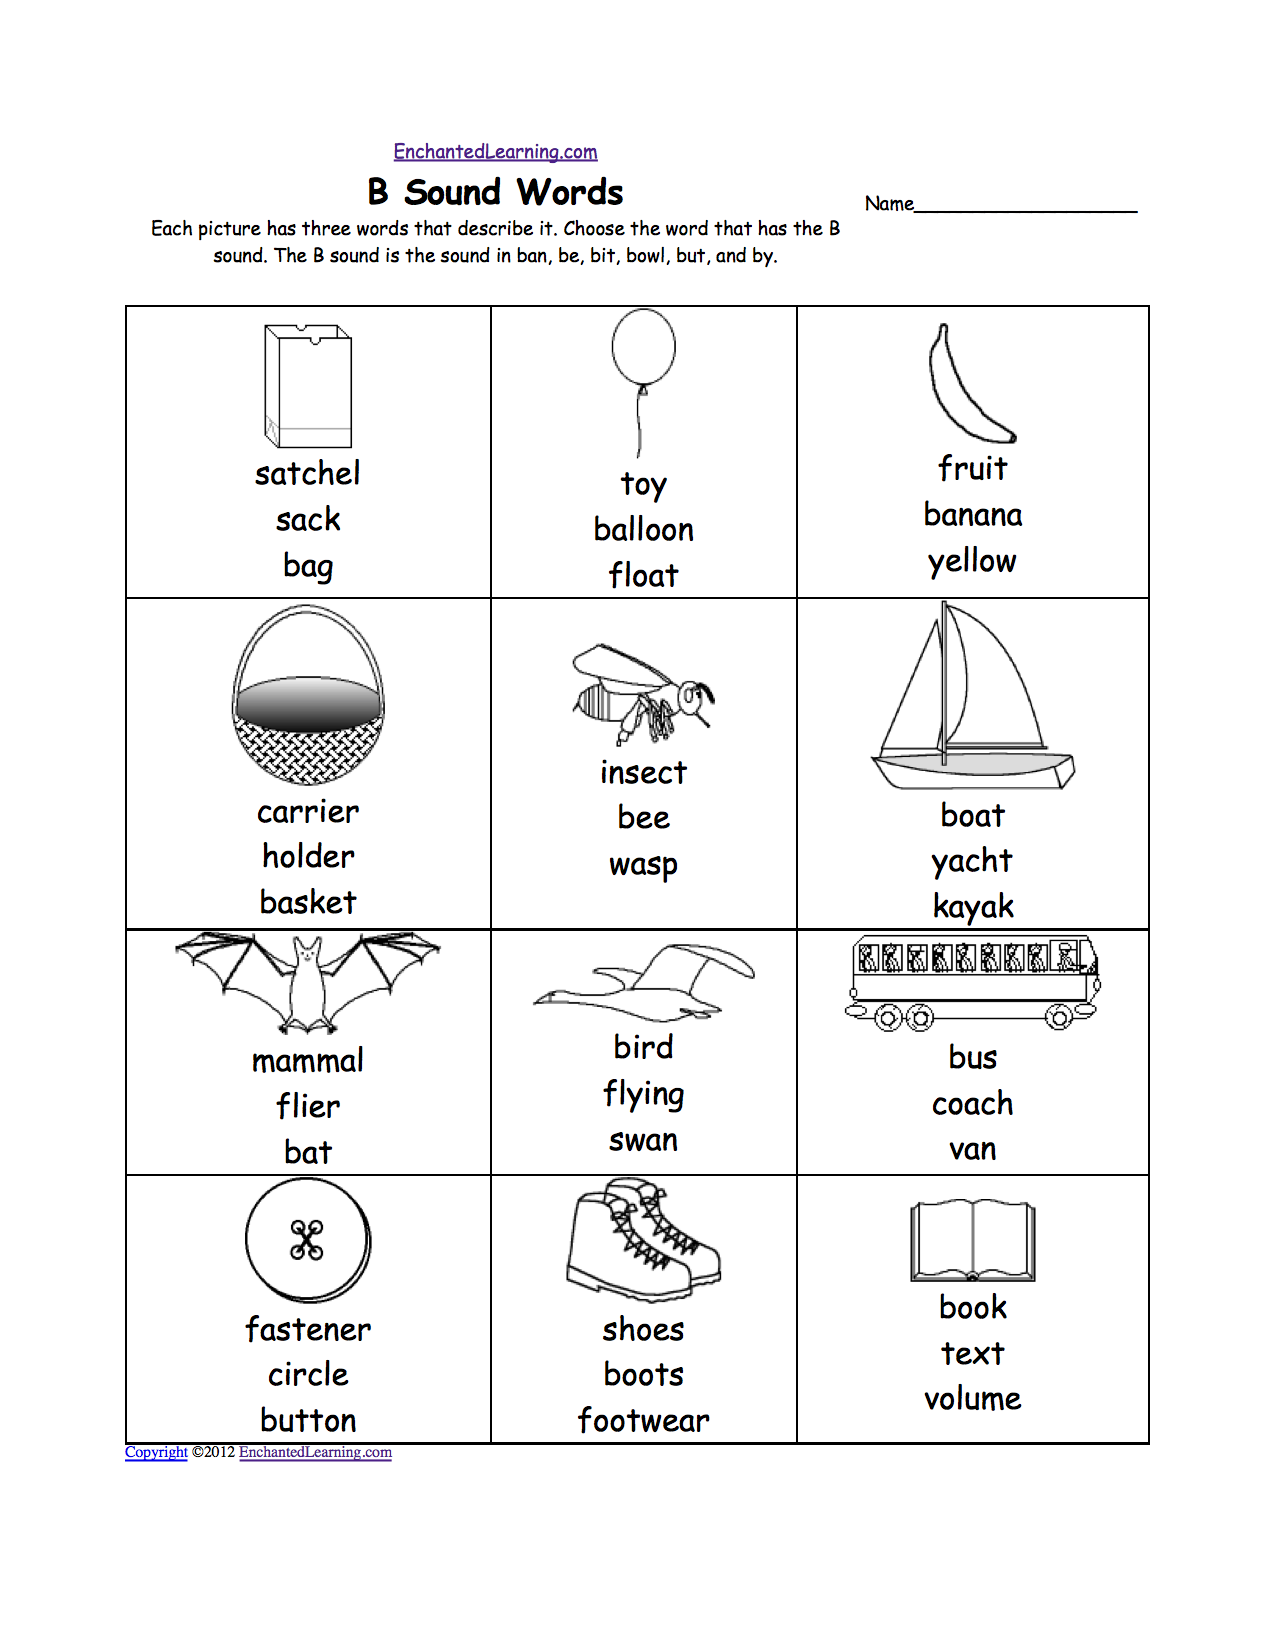 Weirdmailus  Gorgeous Phonics Worksheets Multiple Choice Worksheets To Print  With Fascinating Quotbquot Sound Phonics Worksheet Multiple Choice Each Picture Has Three Words That Describe It Choose The Word That Has A Quotbquot Sound The Quotbquot Sound Is The Sound  With Cute Exterior Angles Of Polygons Worksheet Also Aplusmath Worksheet In Addition Dancing Raisins Worksheet And Addition Properties Worksheets Rd Grade As Well As Volume Of Prisms Worksheets Additionally Writing Kindergarten Worksheets From Enchantedlearningcom With Weirdmailus  Fascinating Phonics Worksheets Multiple Choice Worksheets To Print  With Cute Quotbquot Sound Phonics Worksheet Multiple Choice Each Picture Has Three Words That Describe It Choose The Word That Has A Quotbquot Sound The Quotbquot Sound Is The Sound  And Gorgeous Exterior Angles Of Polygons Worksheet Also Aplusmath Worksheet In Addition Dancing Raisins Worksheet From Enchantedlearningcom